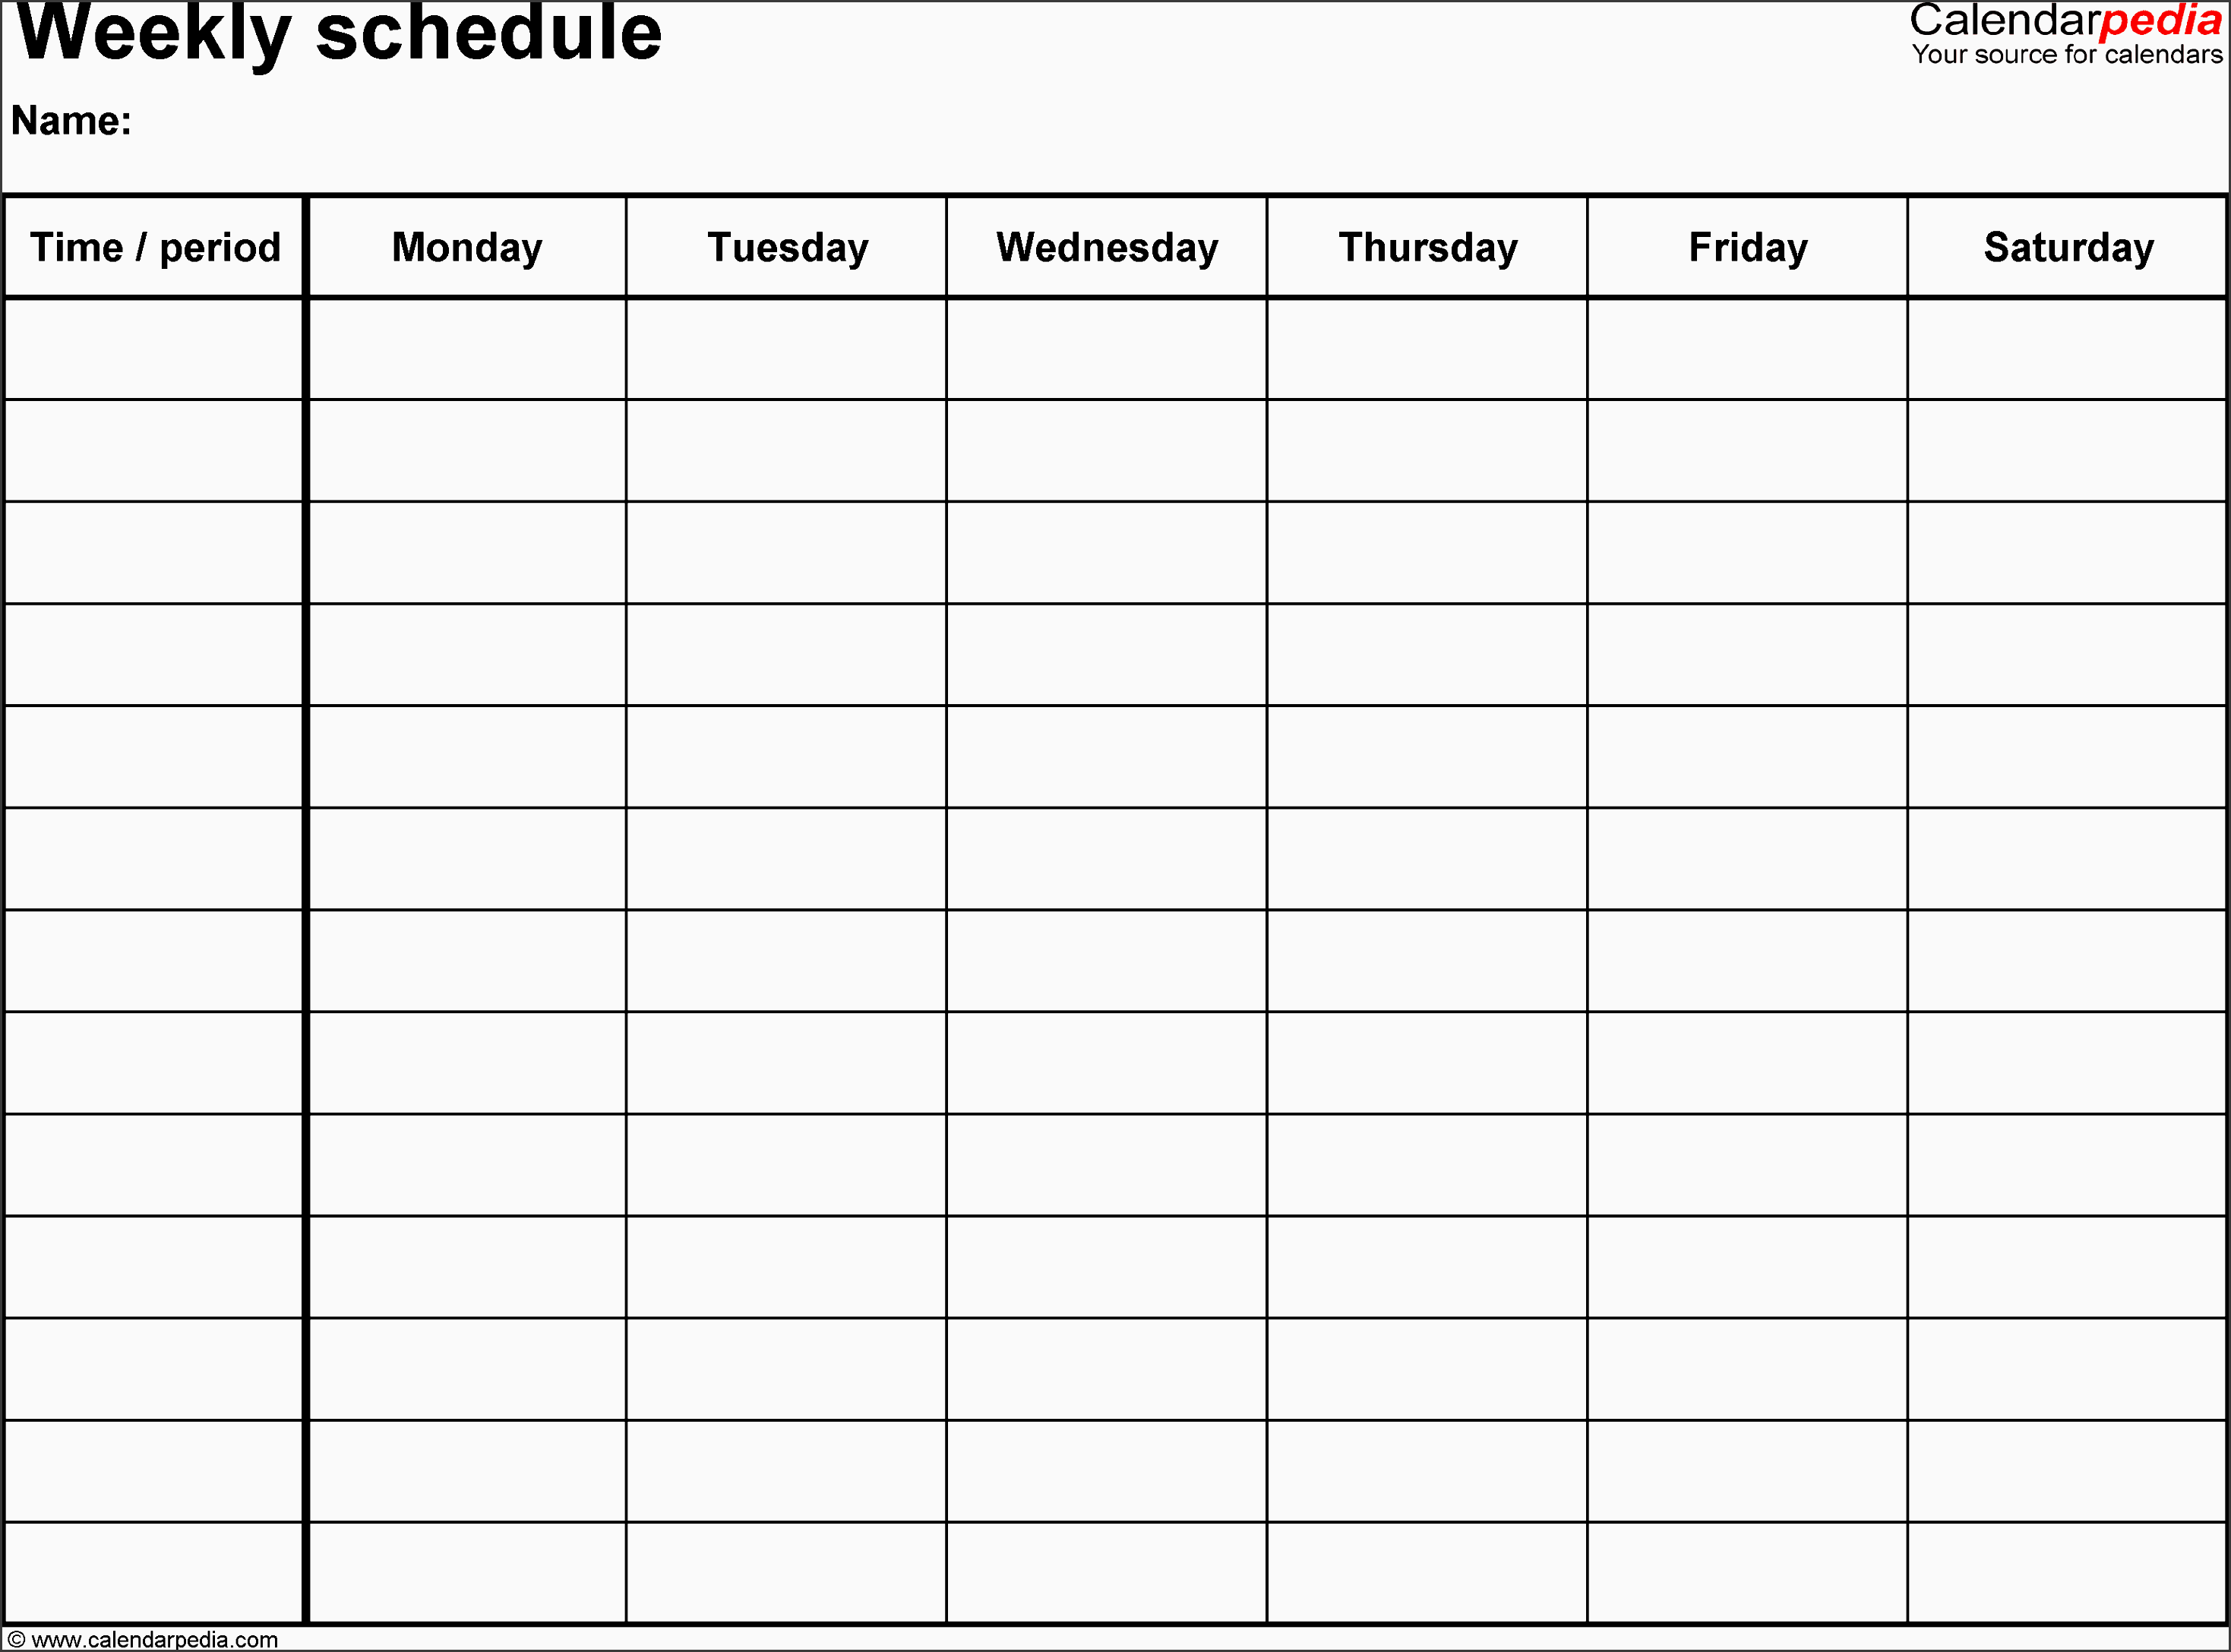 weekly schedule template for pdf version 8 landscape 1 page monday to saturday